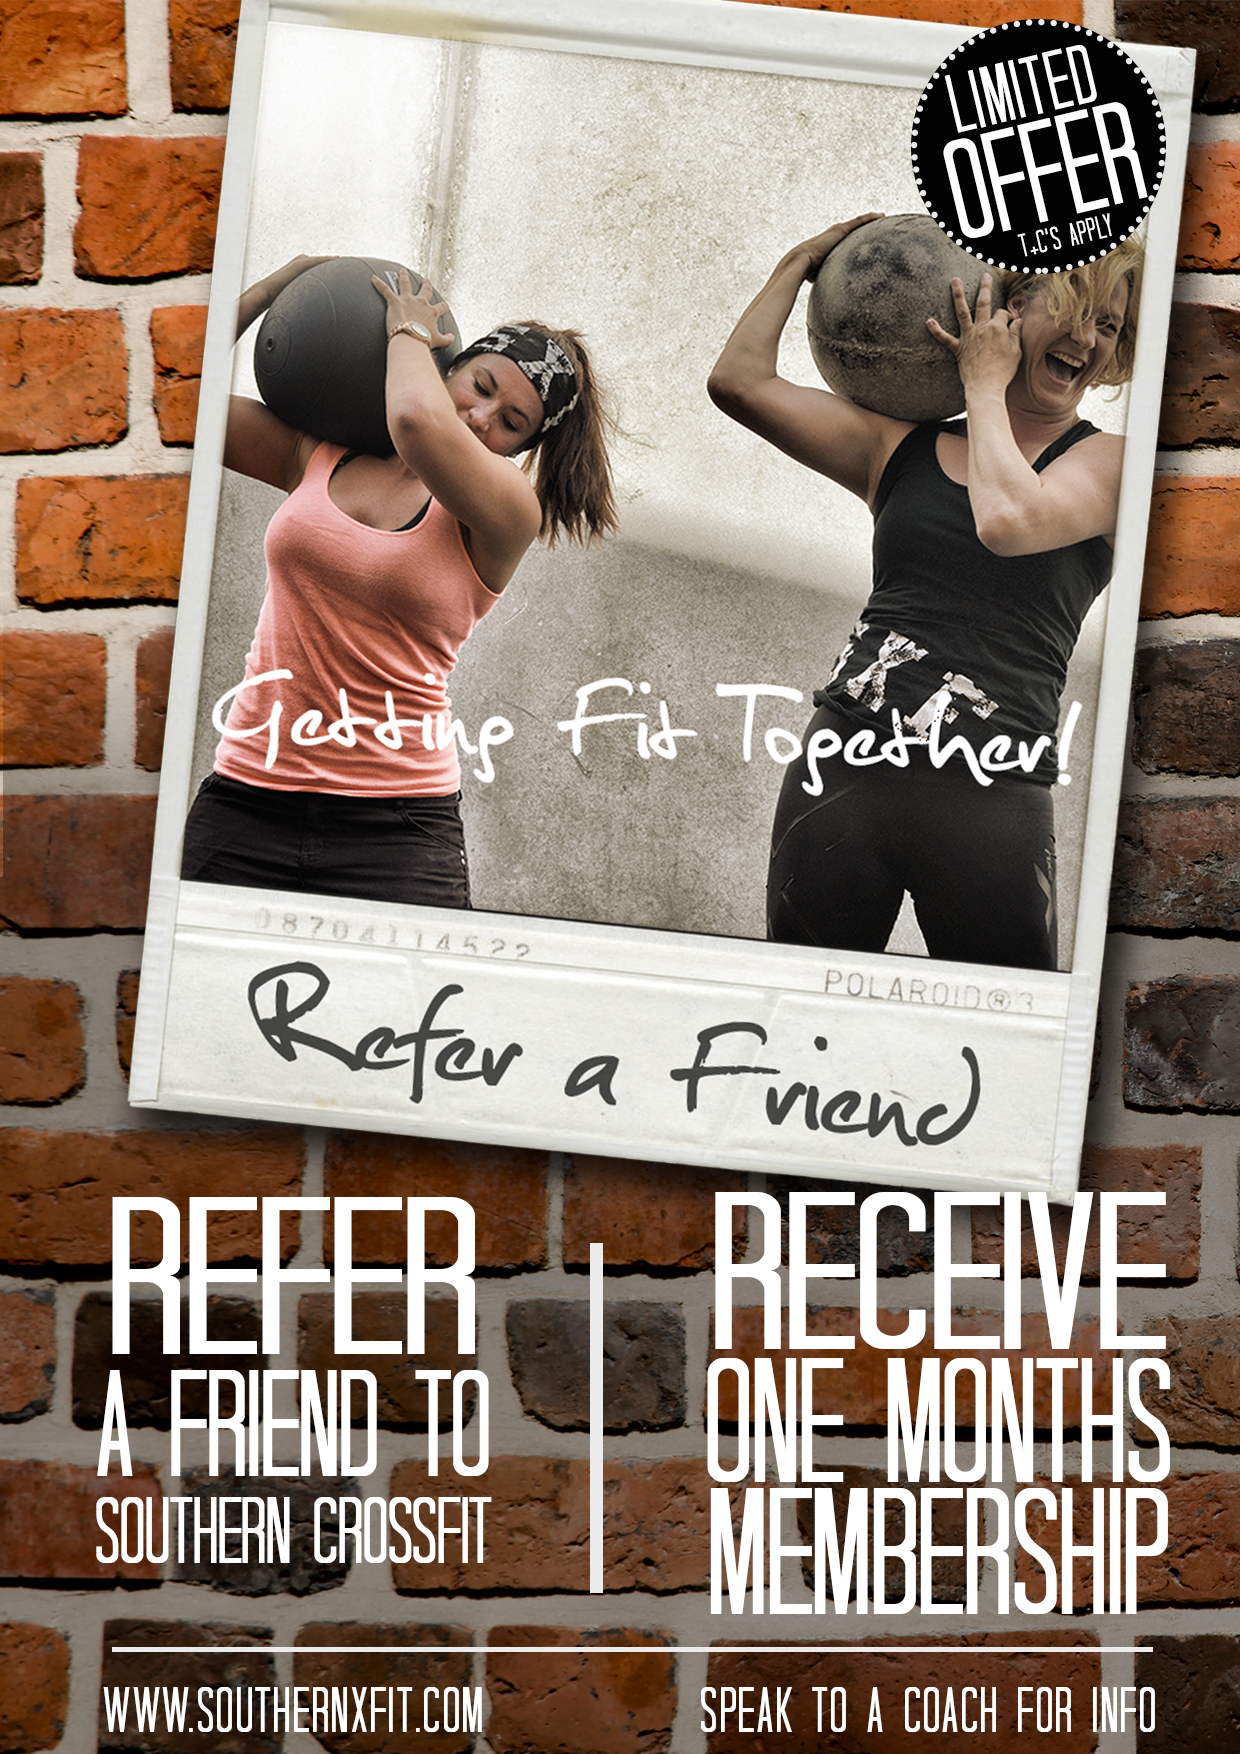 Southern CrossFit - Bring a Friend (A4 Poster) 4 Rev 1.5.png